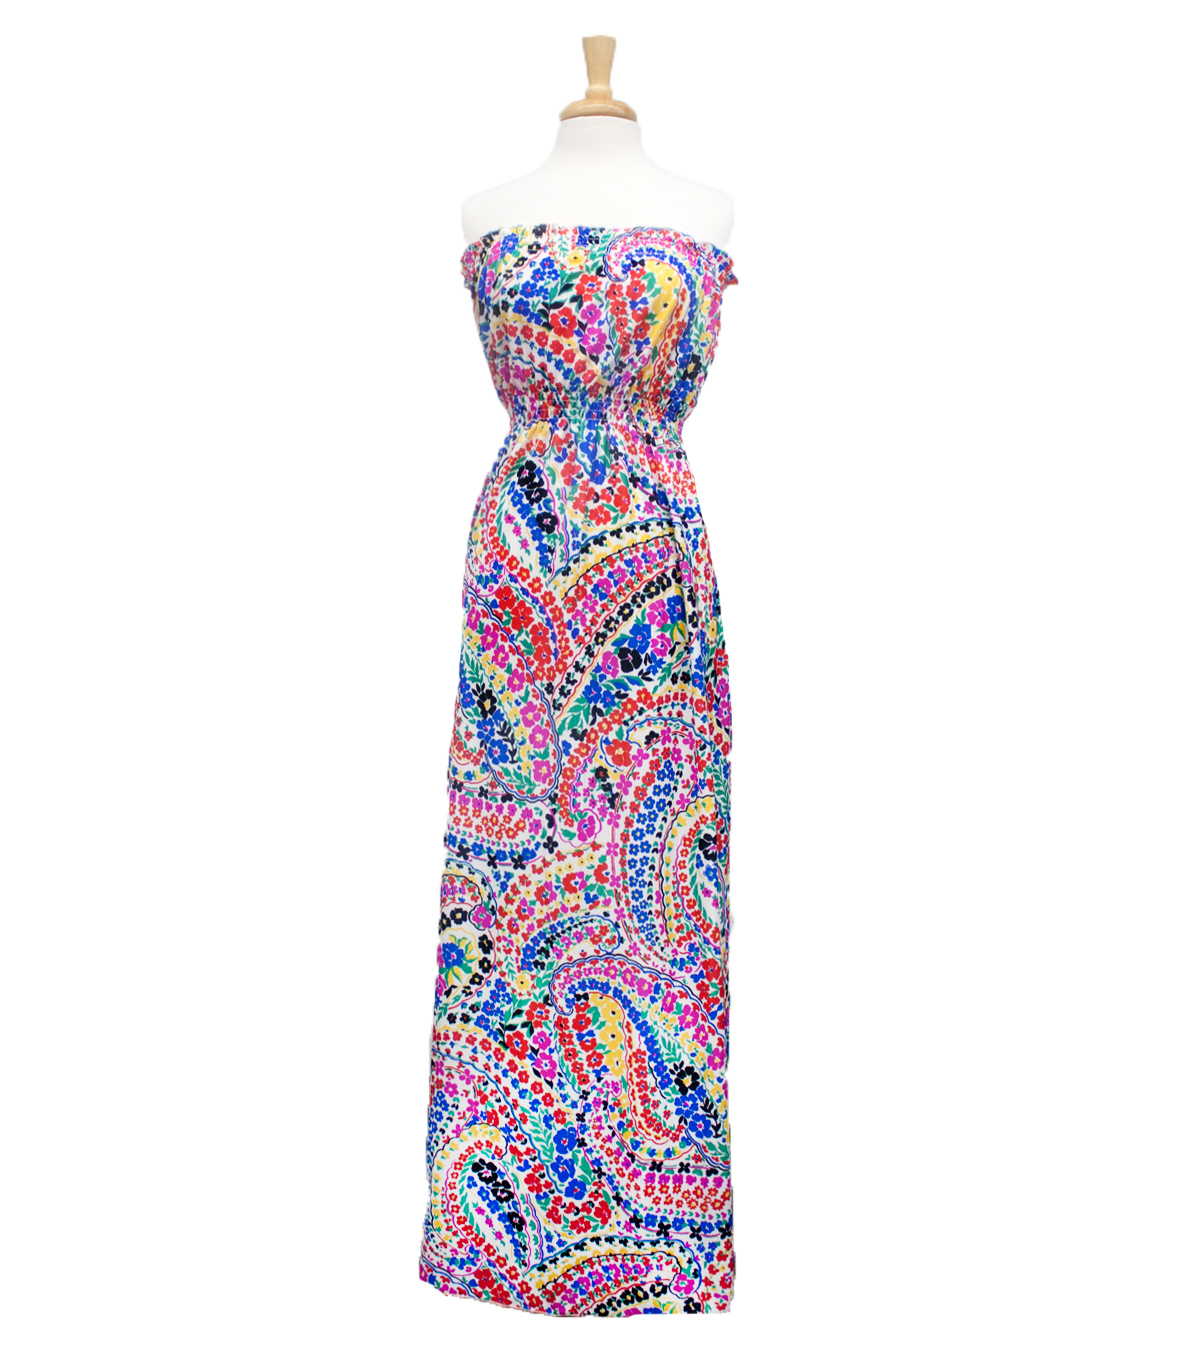 Style In An Instant 53\u0022 Blouson Dress Knit Paisley Floral